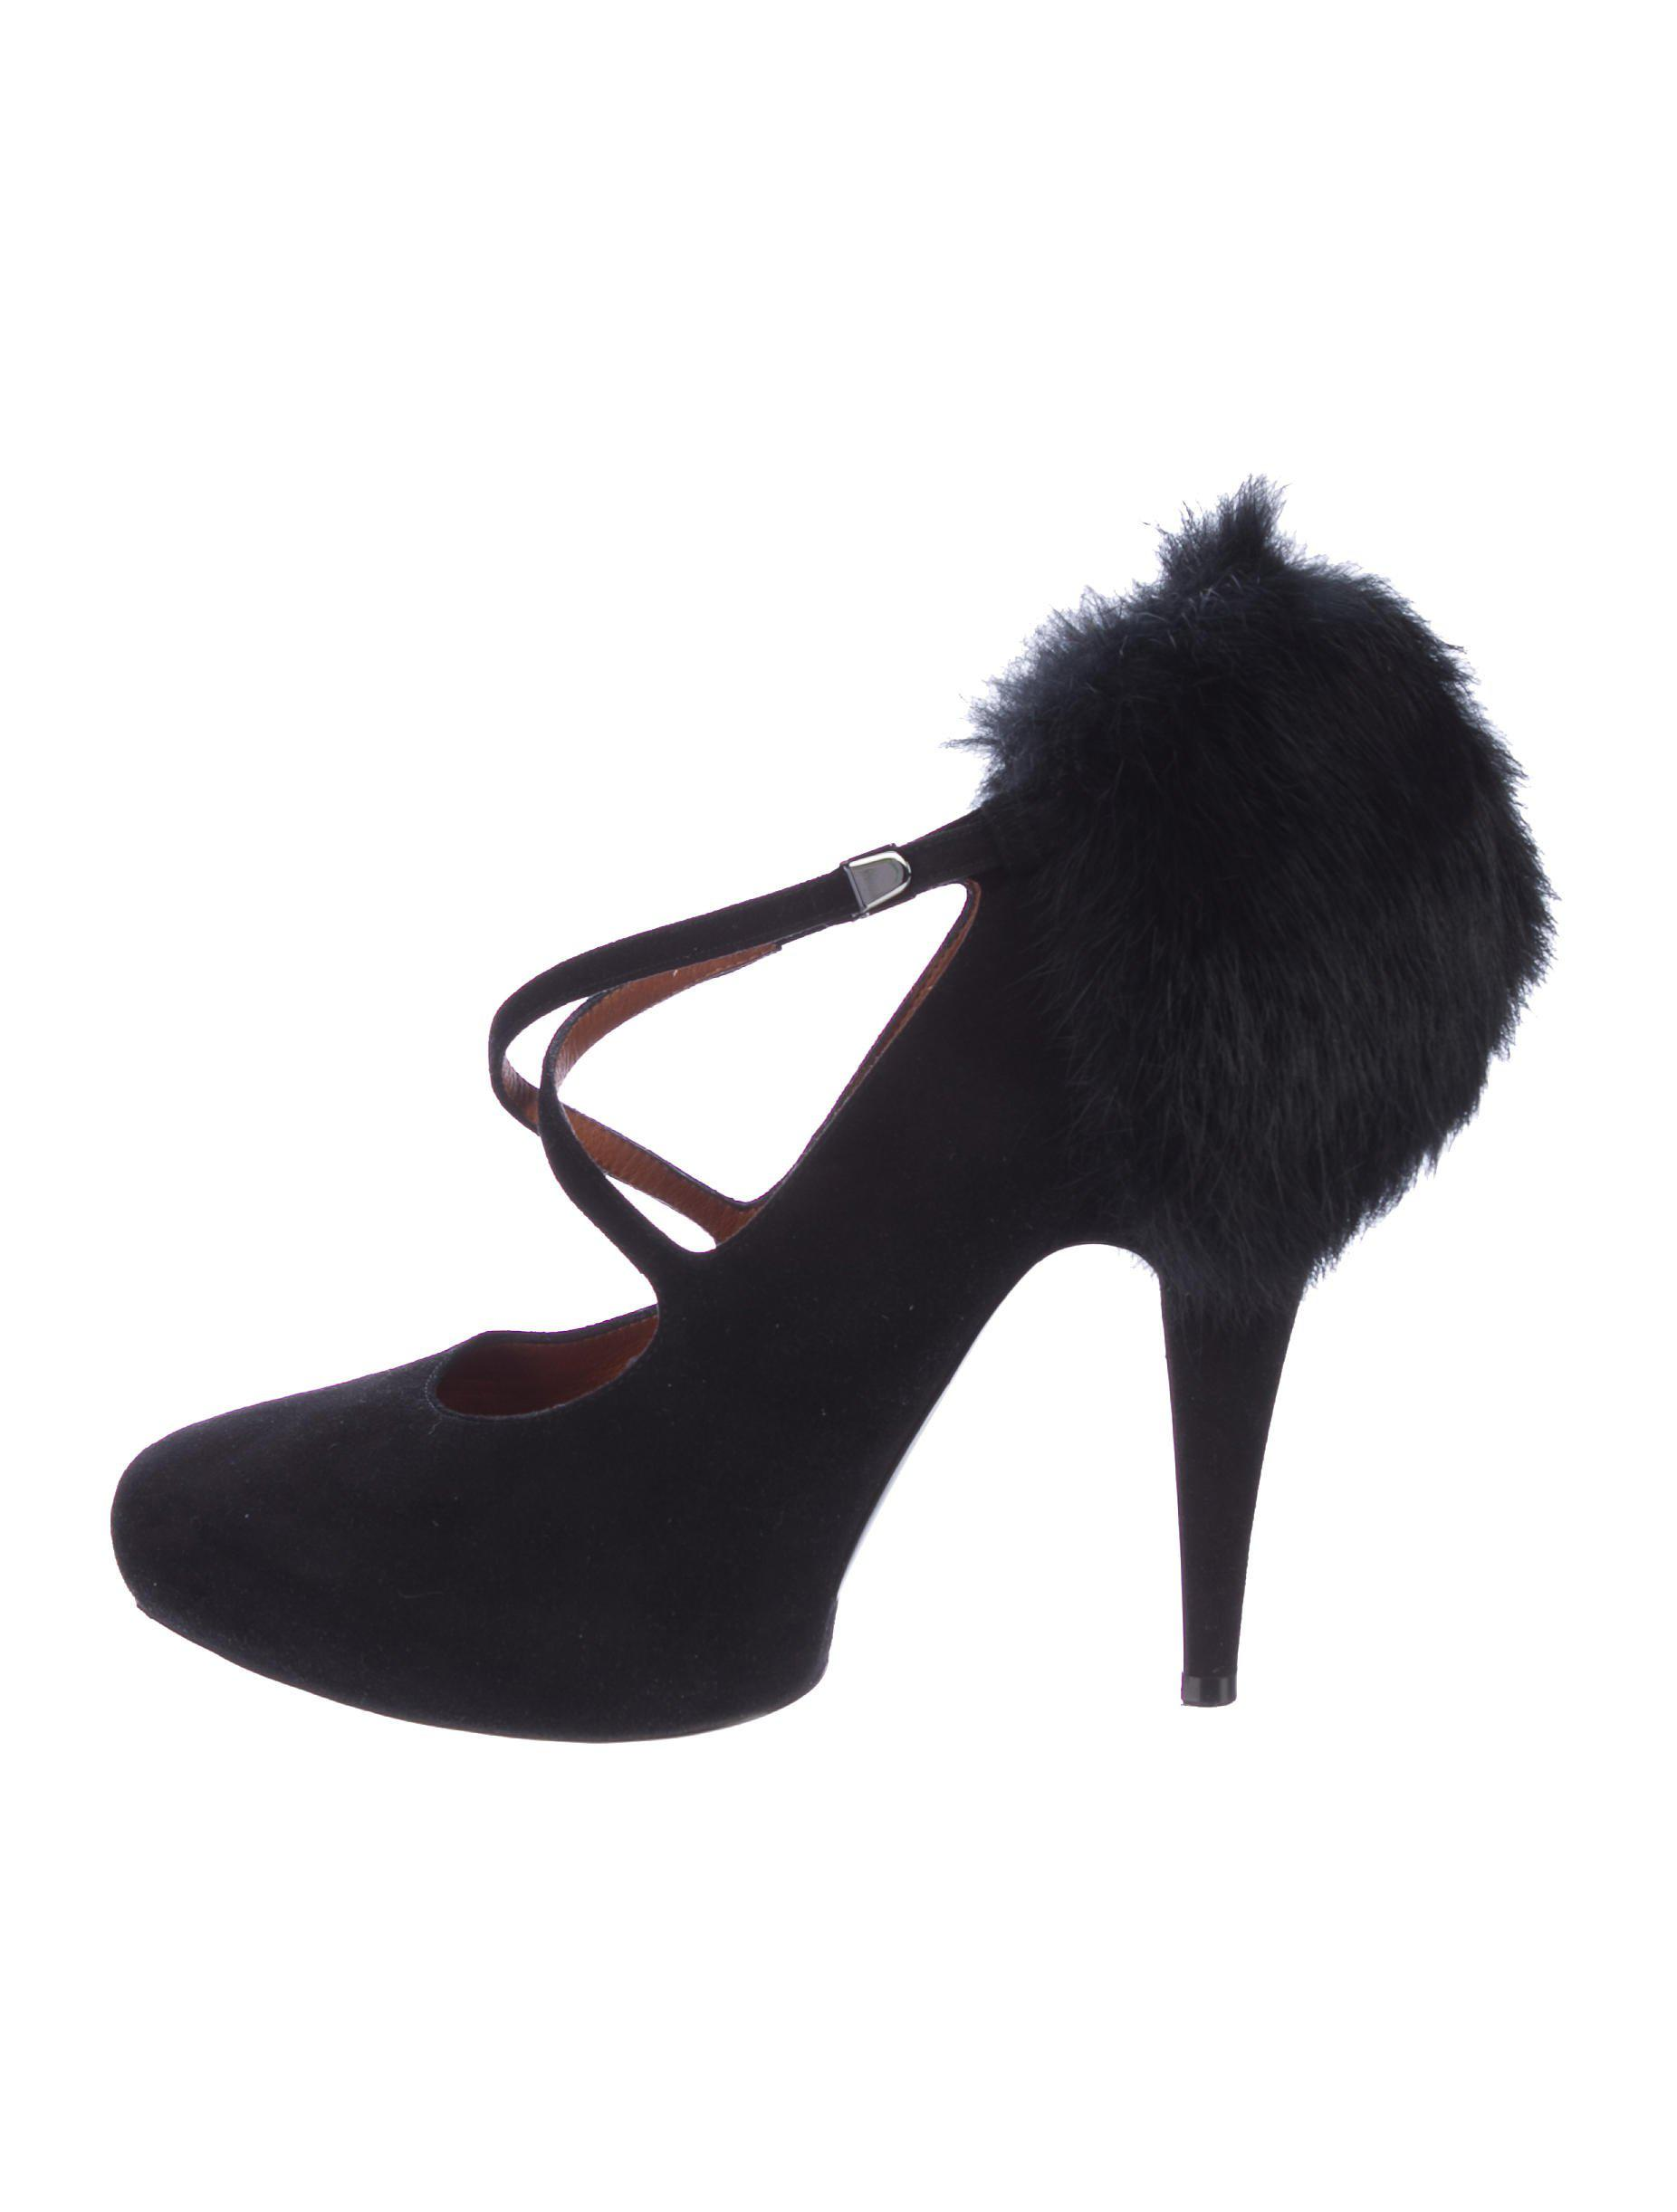 Givenchy Mink-Trimmed Suede Pumps looking for cheap price shipping discount authentic Yyui2KG